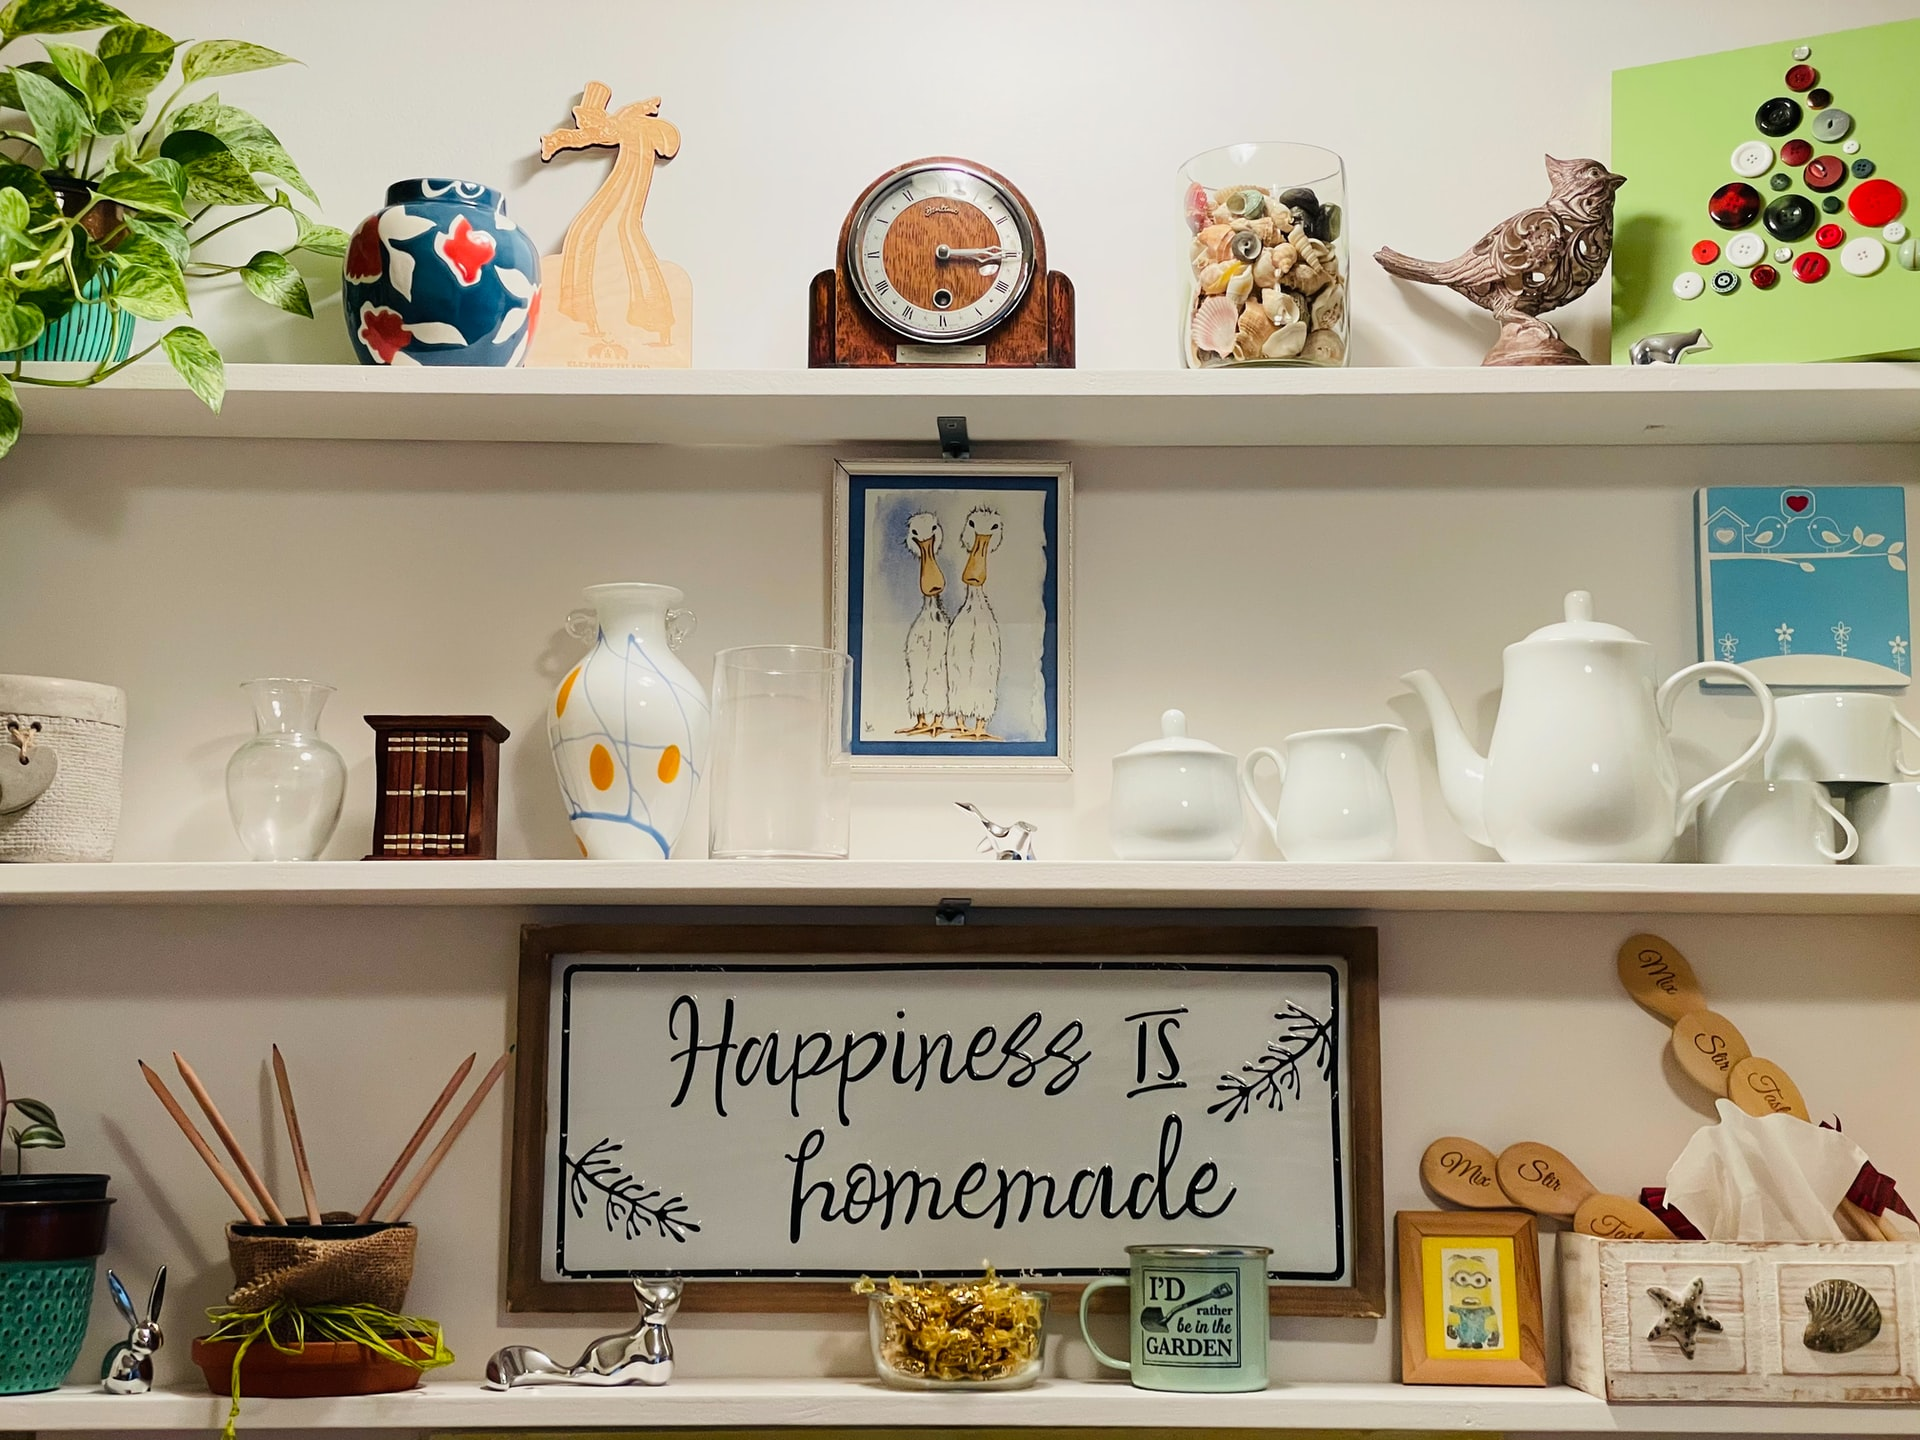 Declutter and donate to Hospiscare: Fall in love with your home again